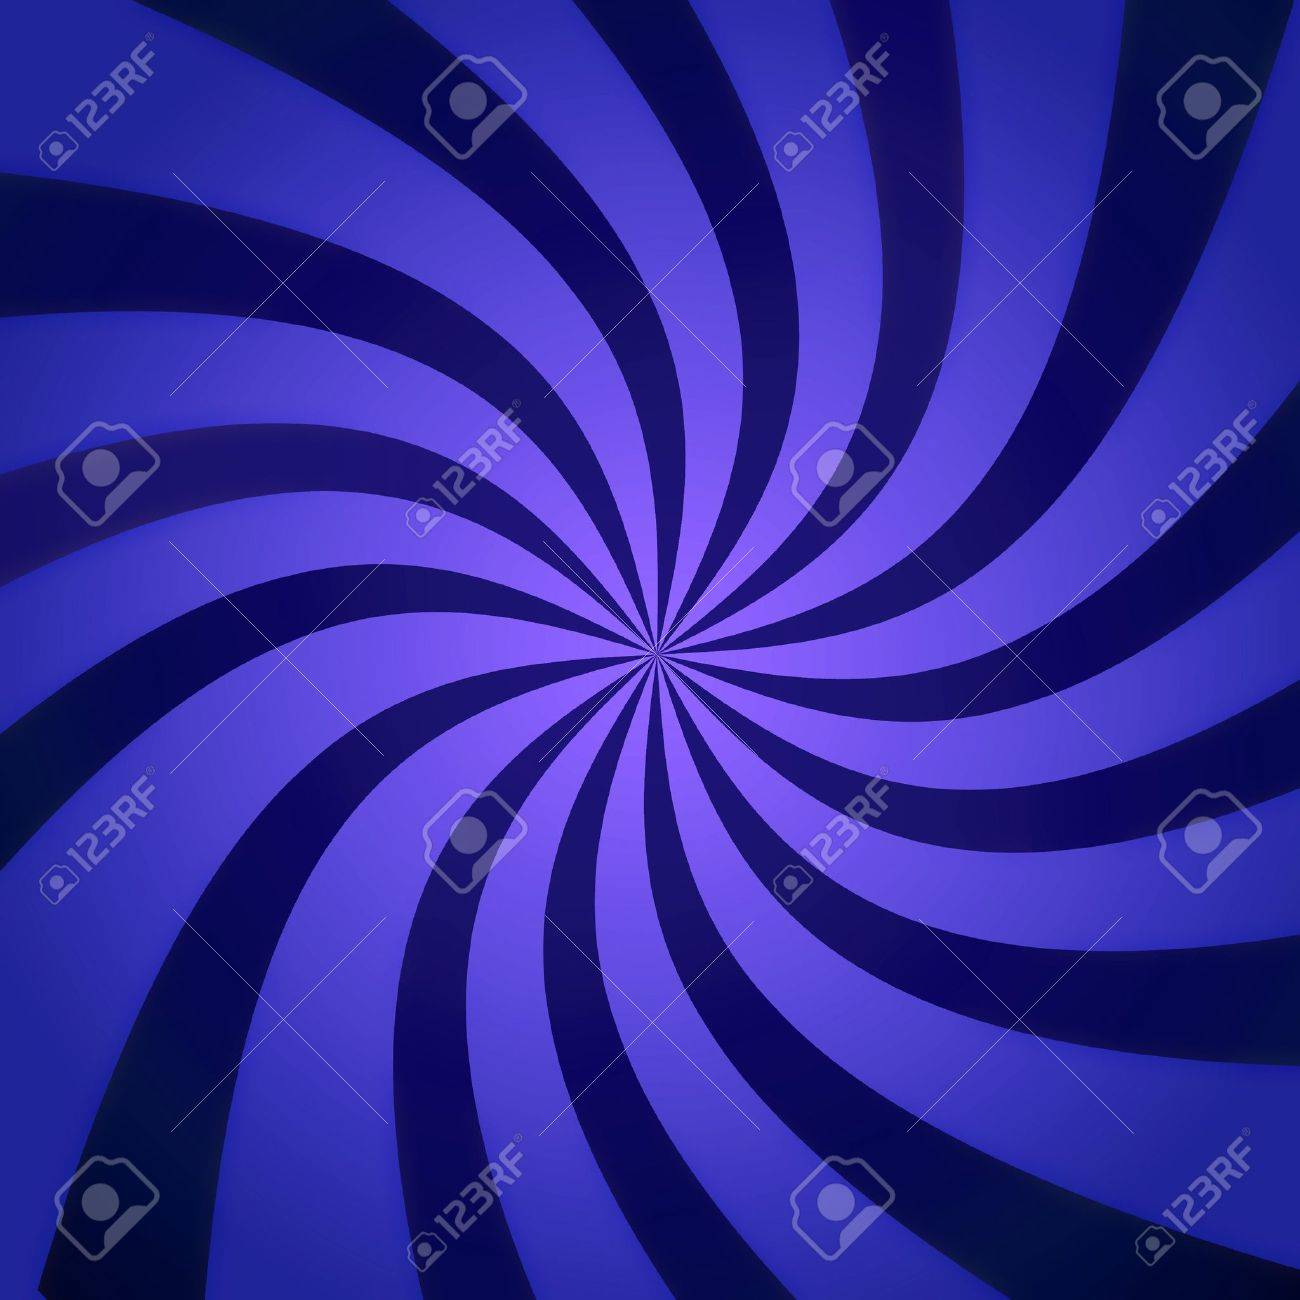 Funky abstract purple background illustration of twisty stripes with a radial gradient. Stock Illustration - 7036634